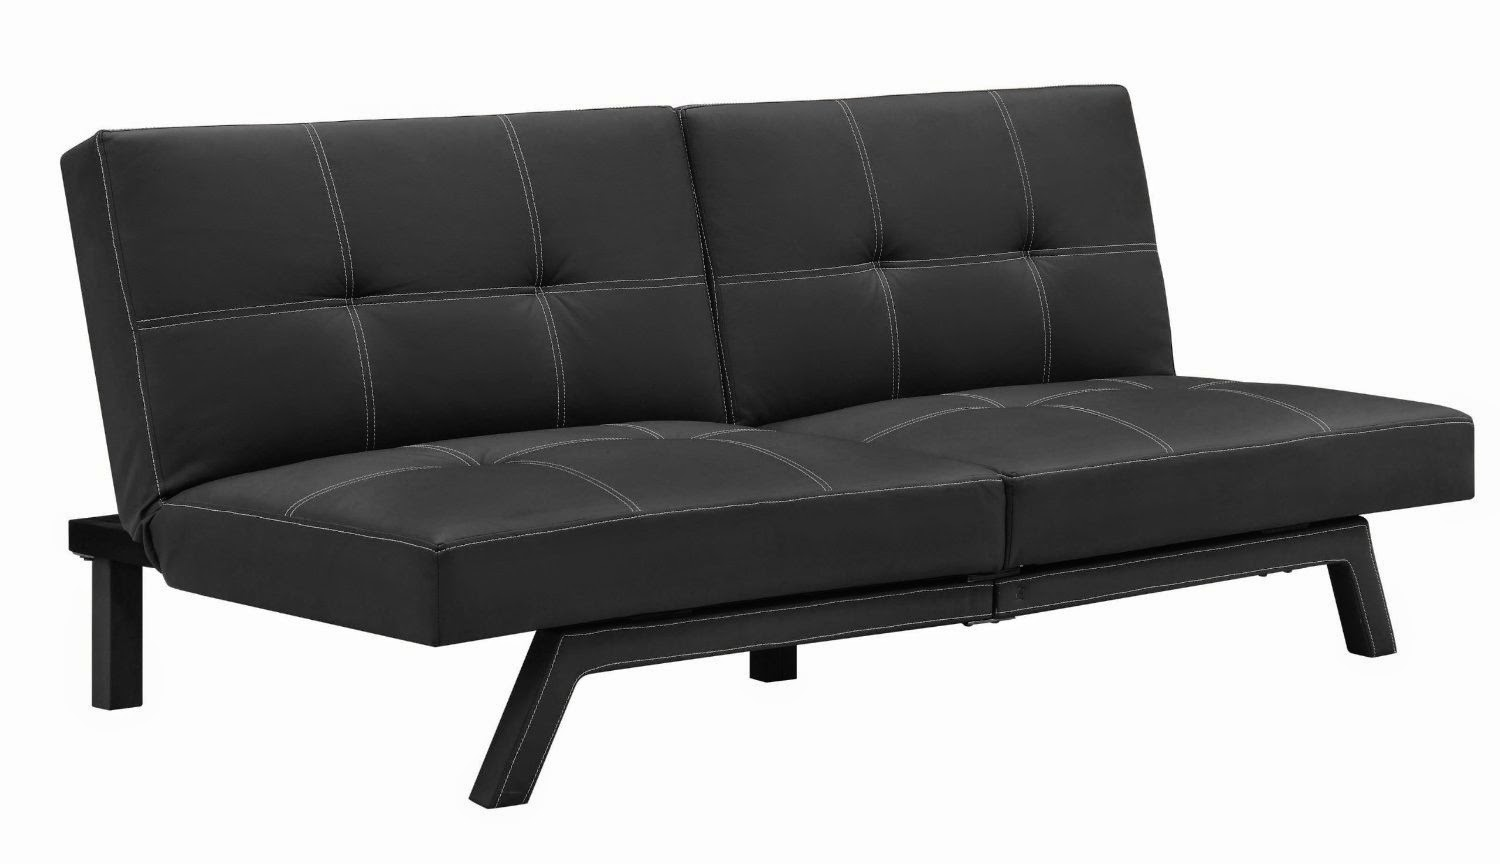 Black Sofa Cheap Chaise Longue Bed Canada Leather Couch